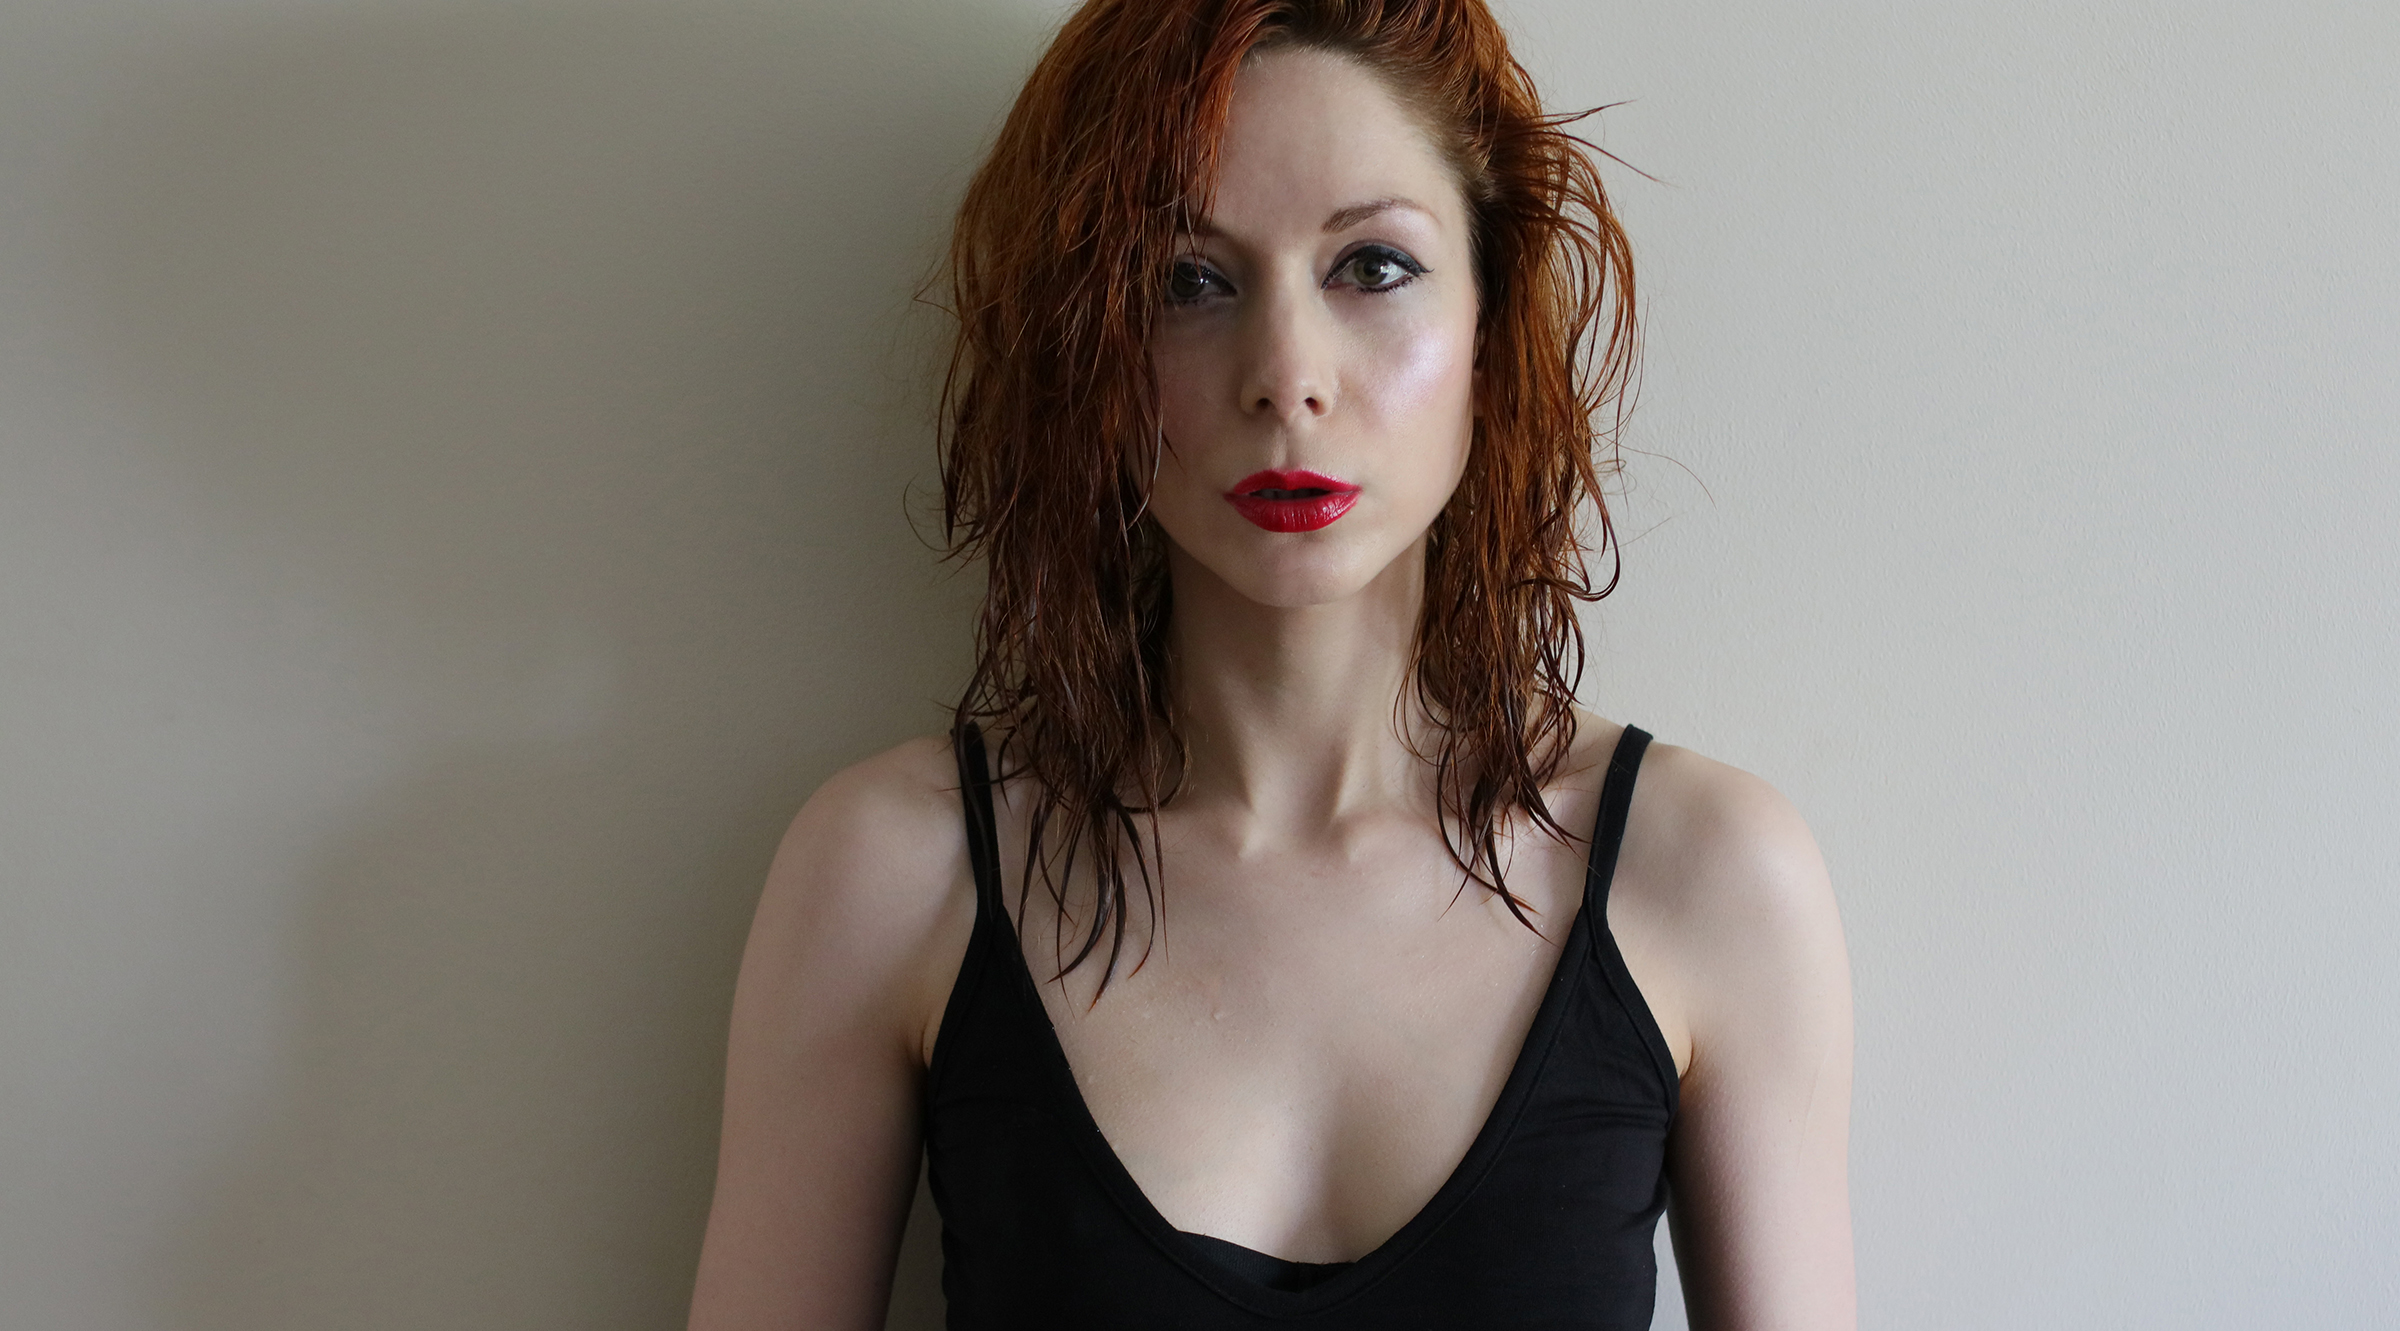 INTERVIEW: The Anchoress on The Art of Losing